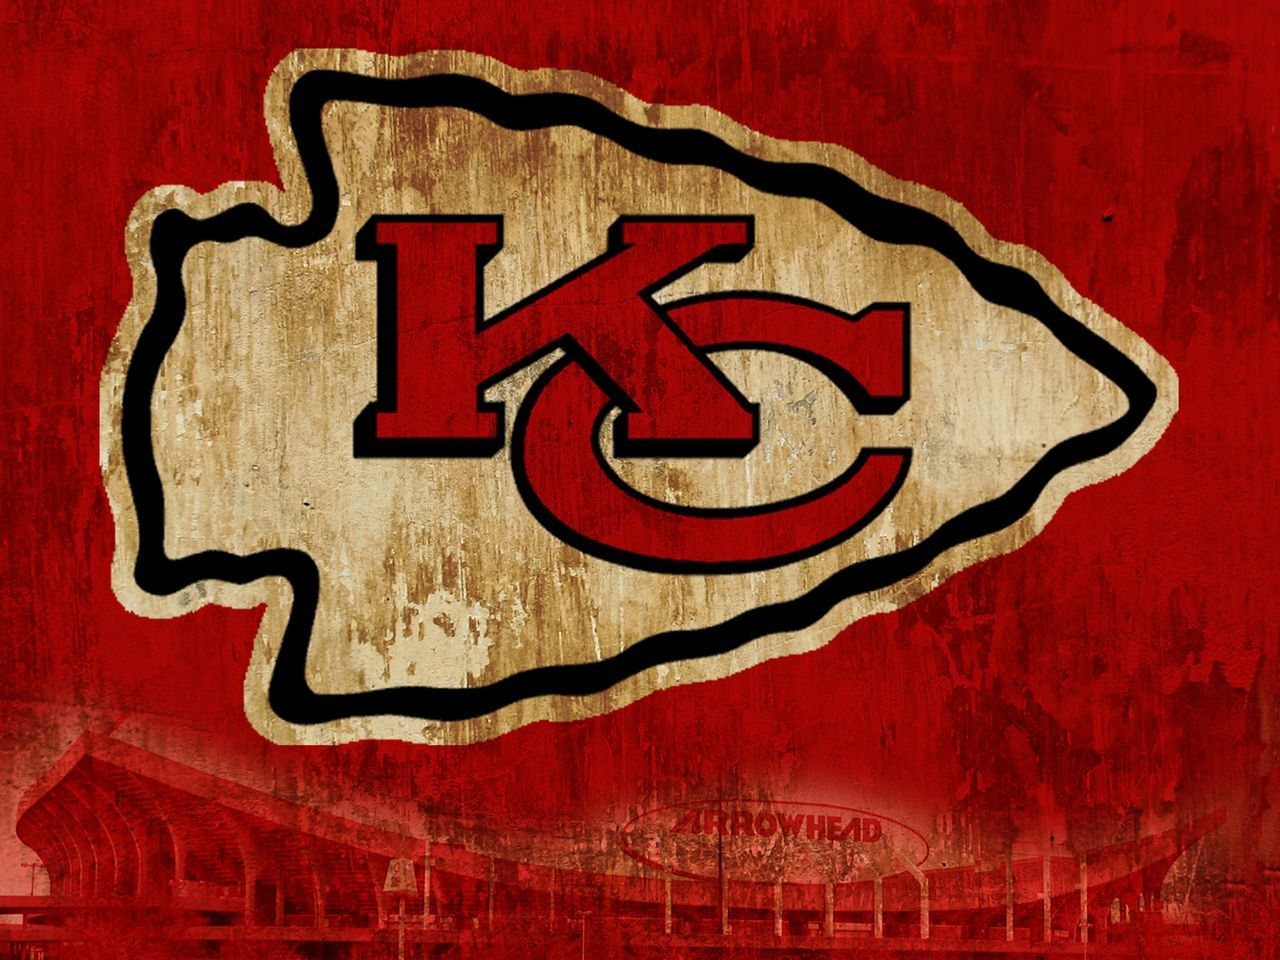 Kc Wallpapers 44 Wallpapers Hd Wallpapers Chiefs Wallpaper Kansas City Chiefs Football Kansas City Chiefs